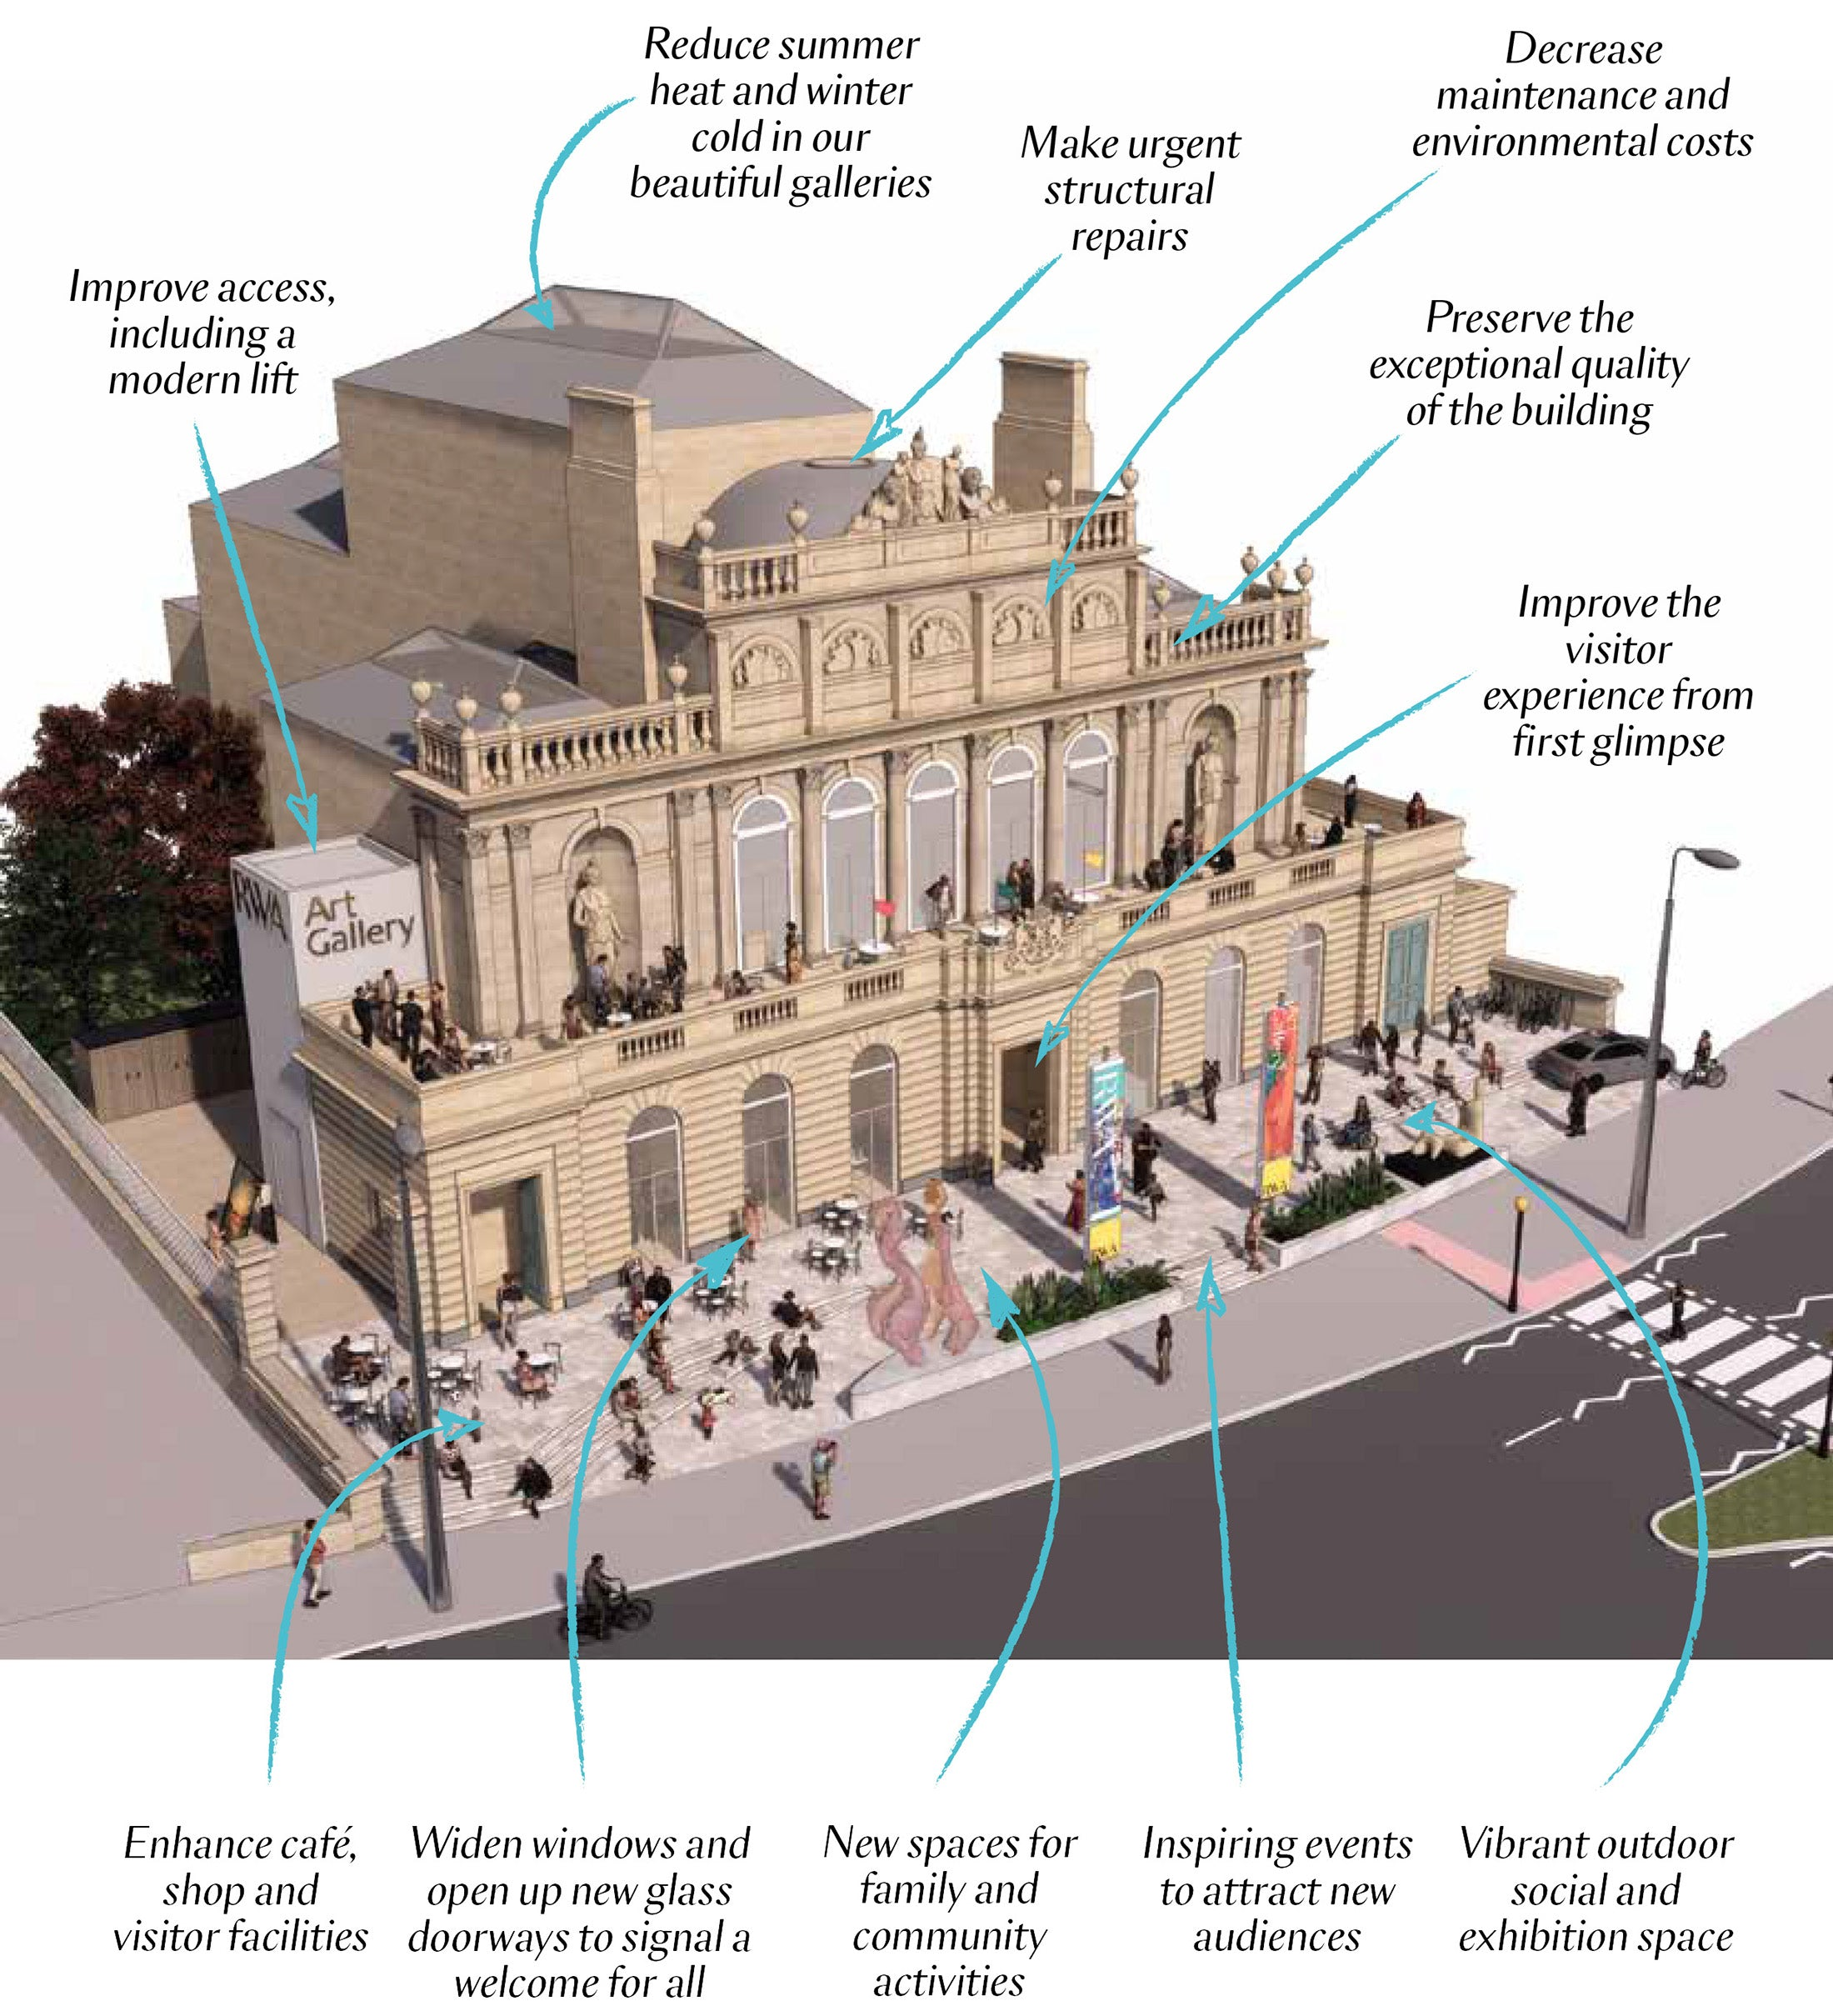 Changes to our building as a result of the Light and Inspiration Capital Project